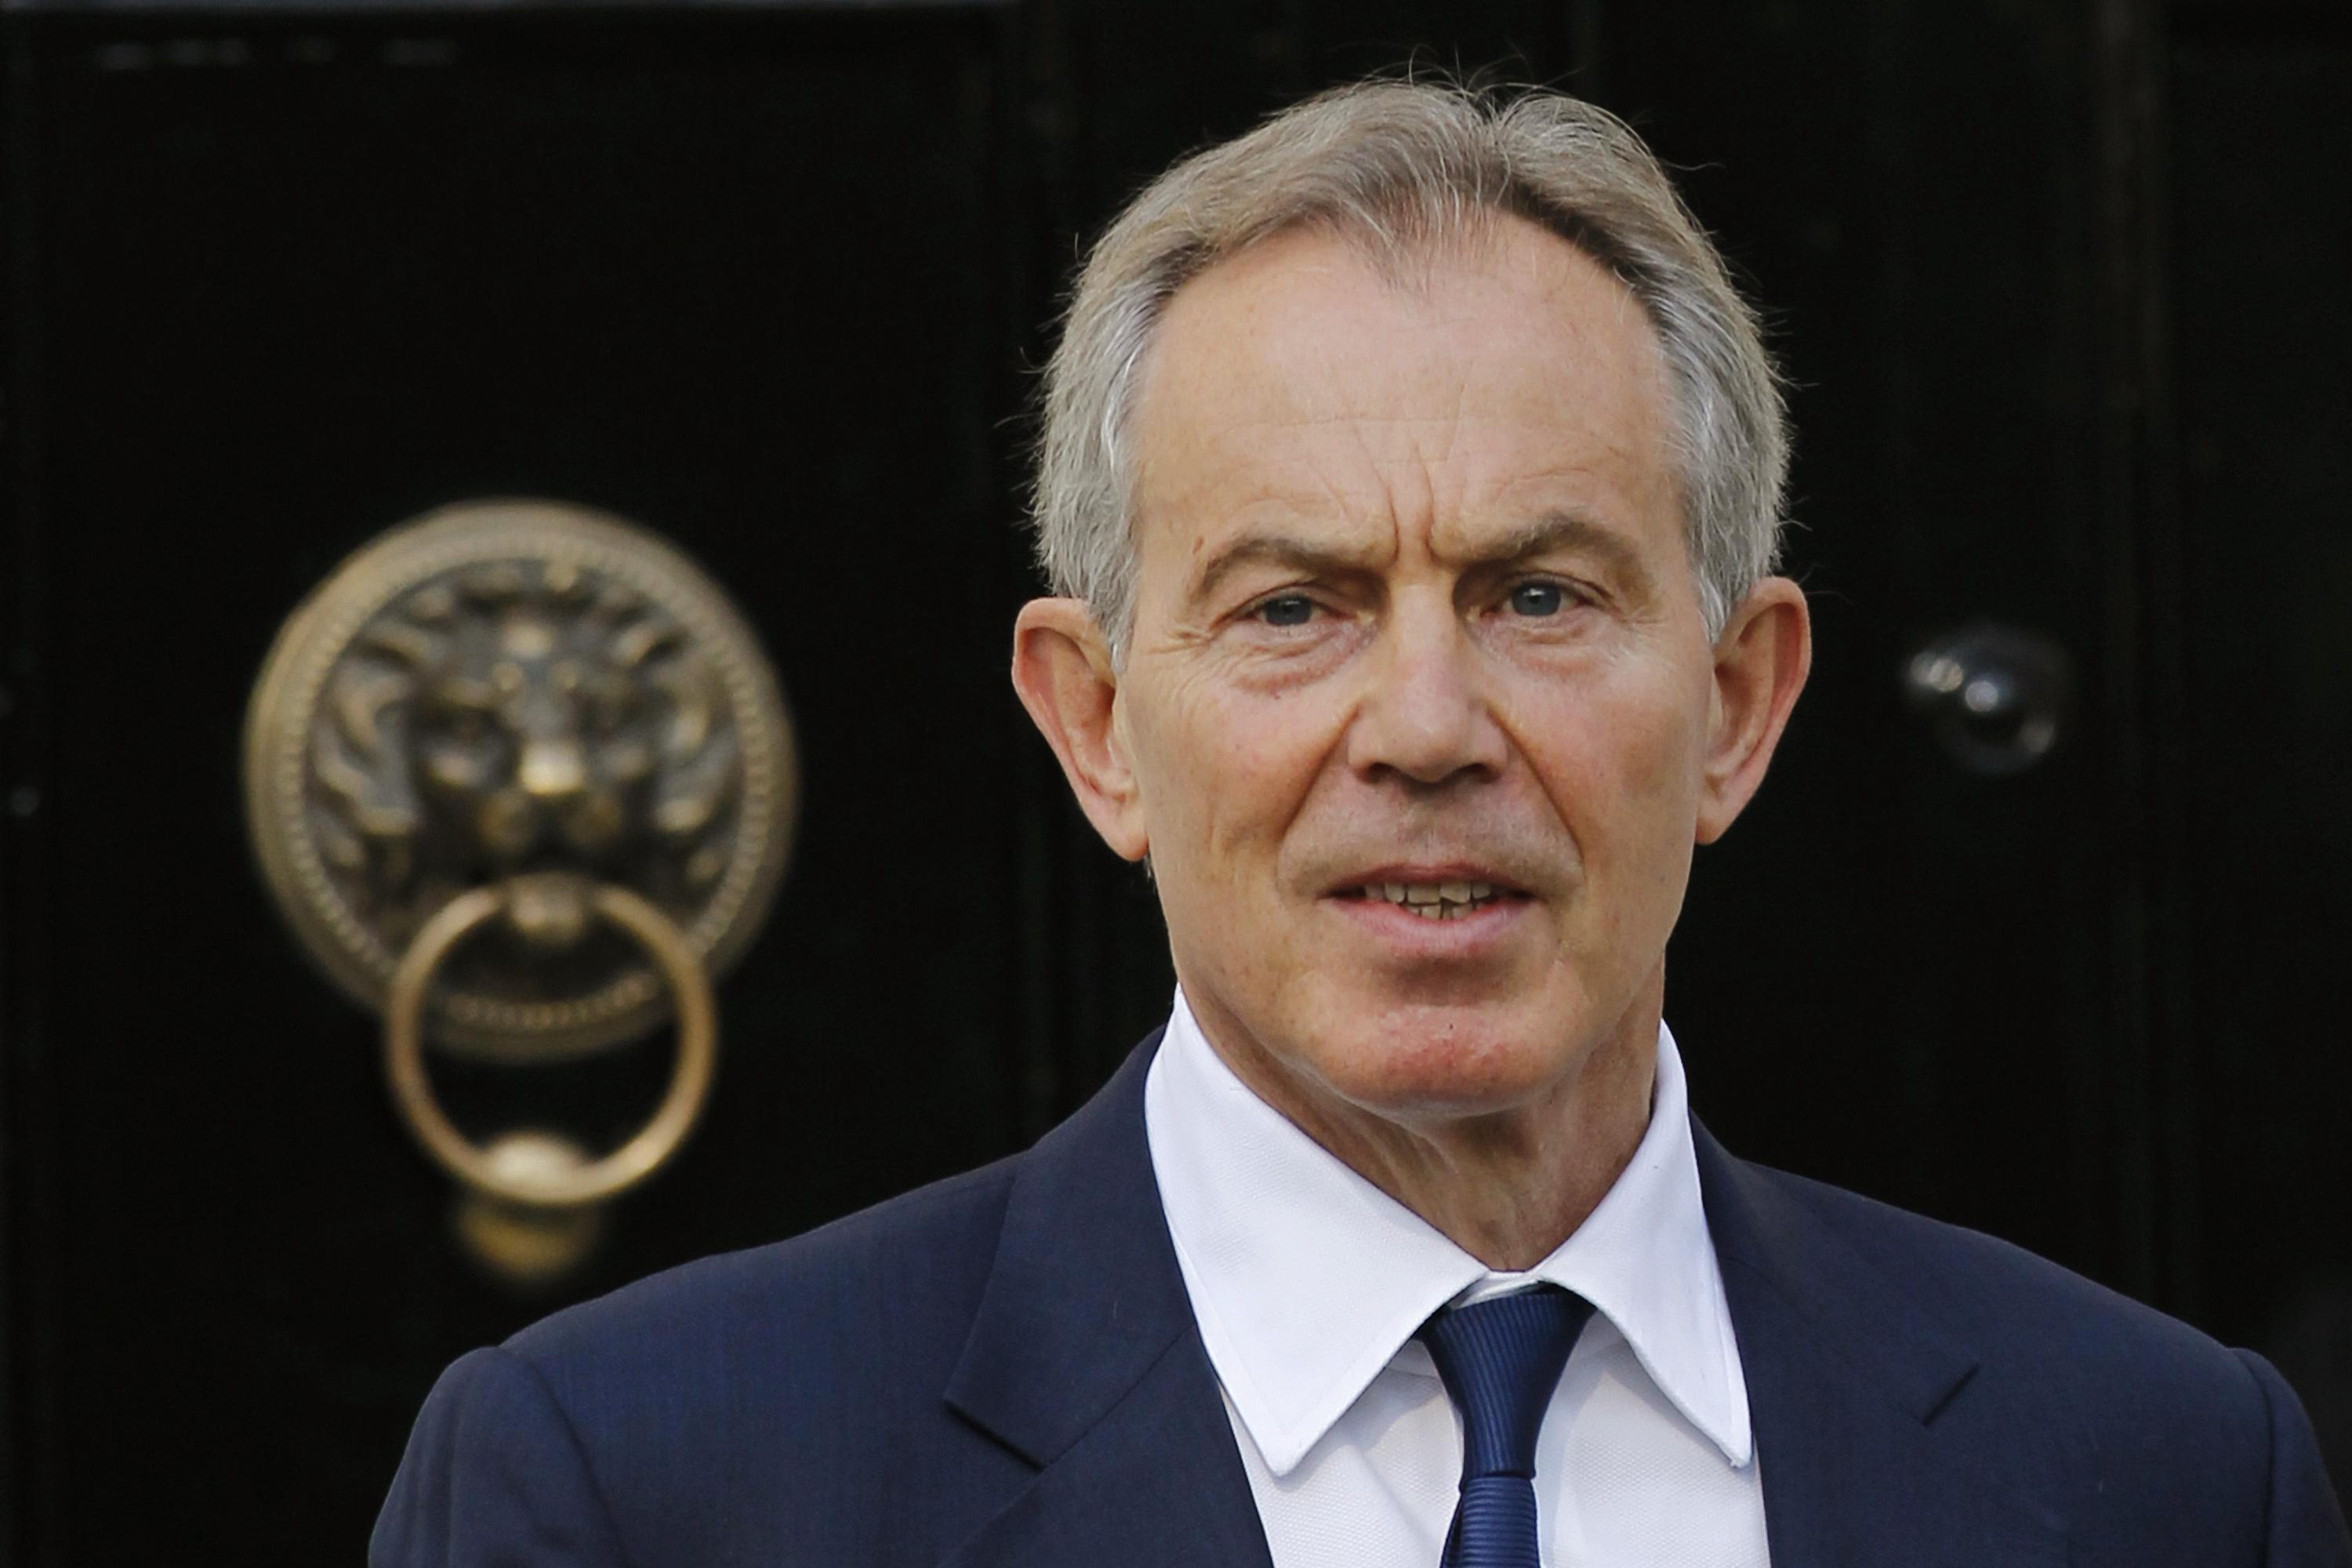 Image: Tony Blair